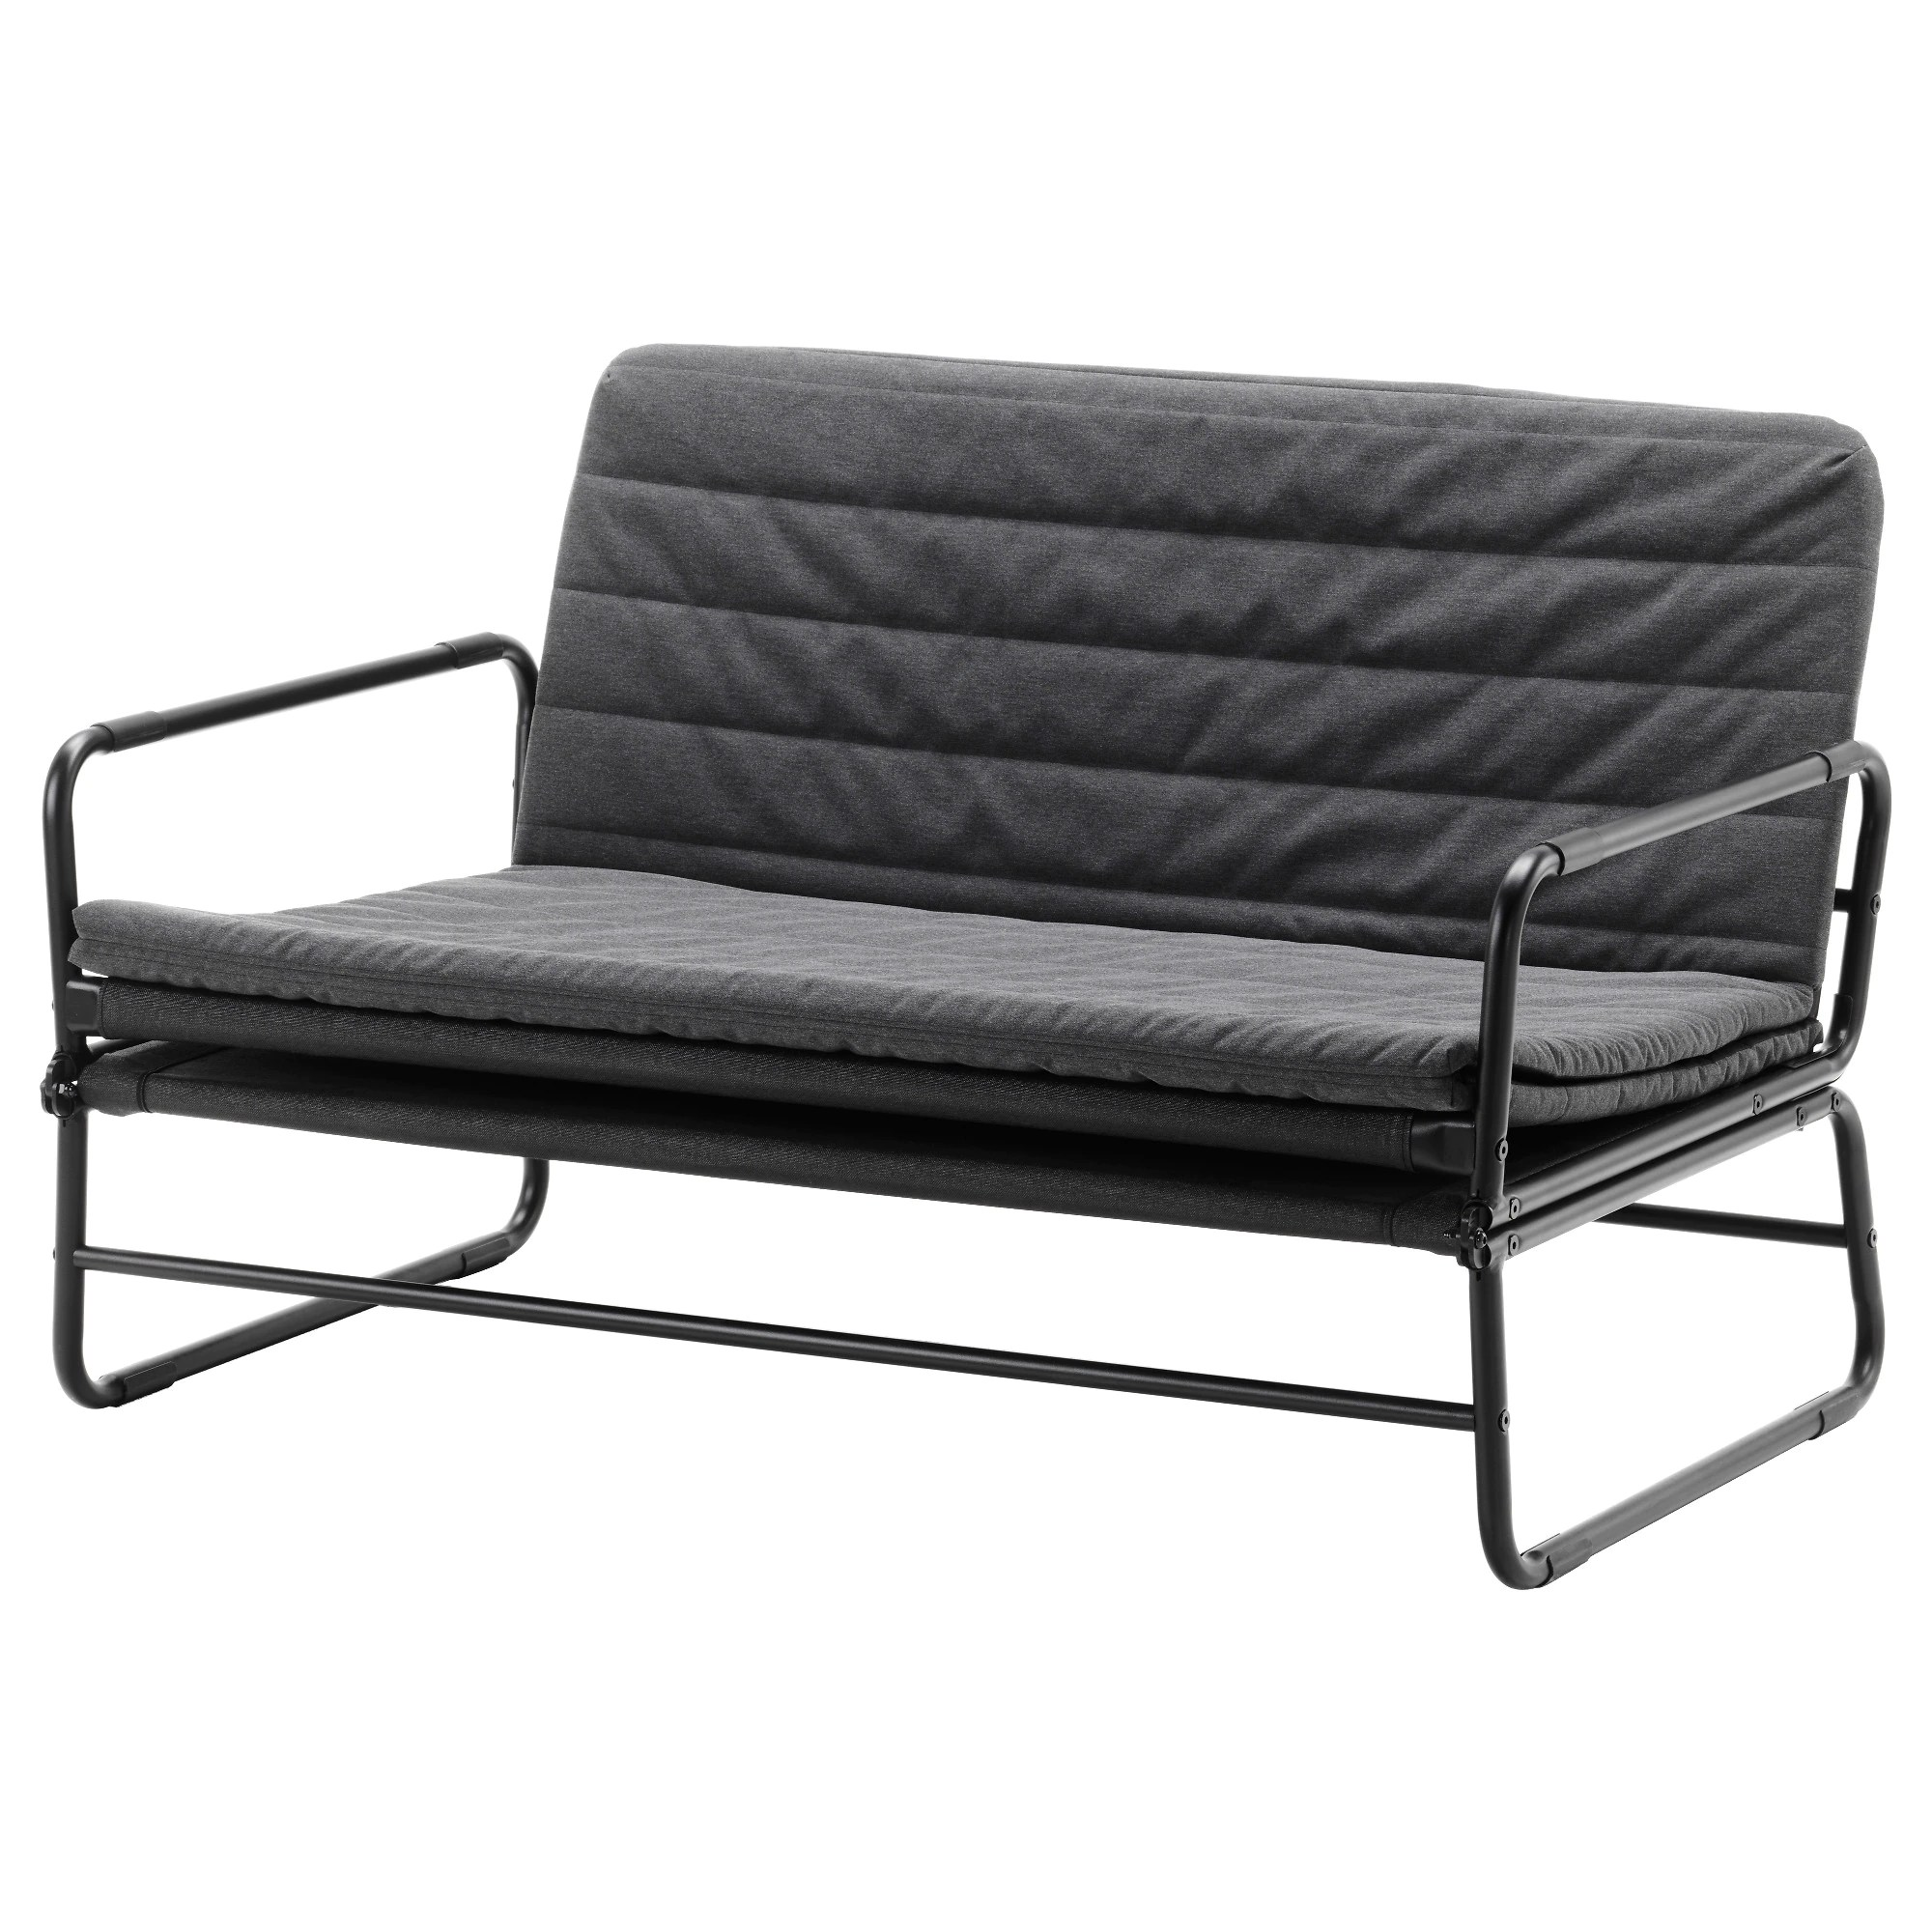 Bettsofa Askeby Hammarn Futon Knisa Dark Gray Black